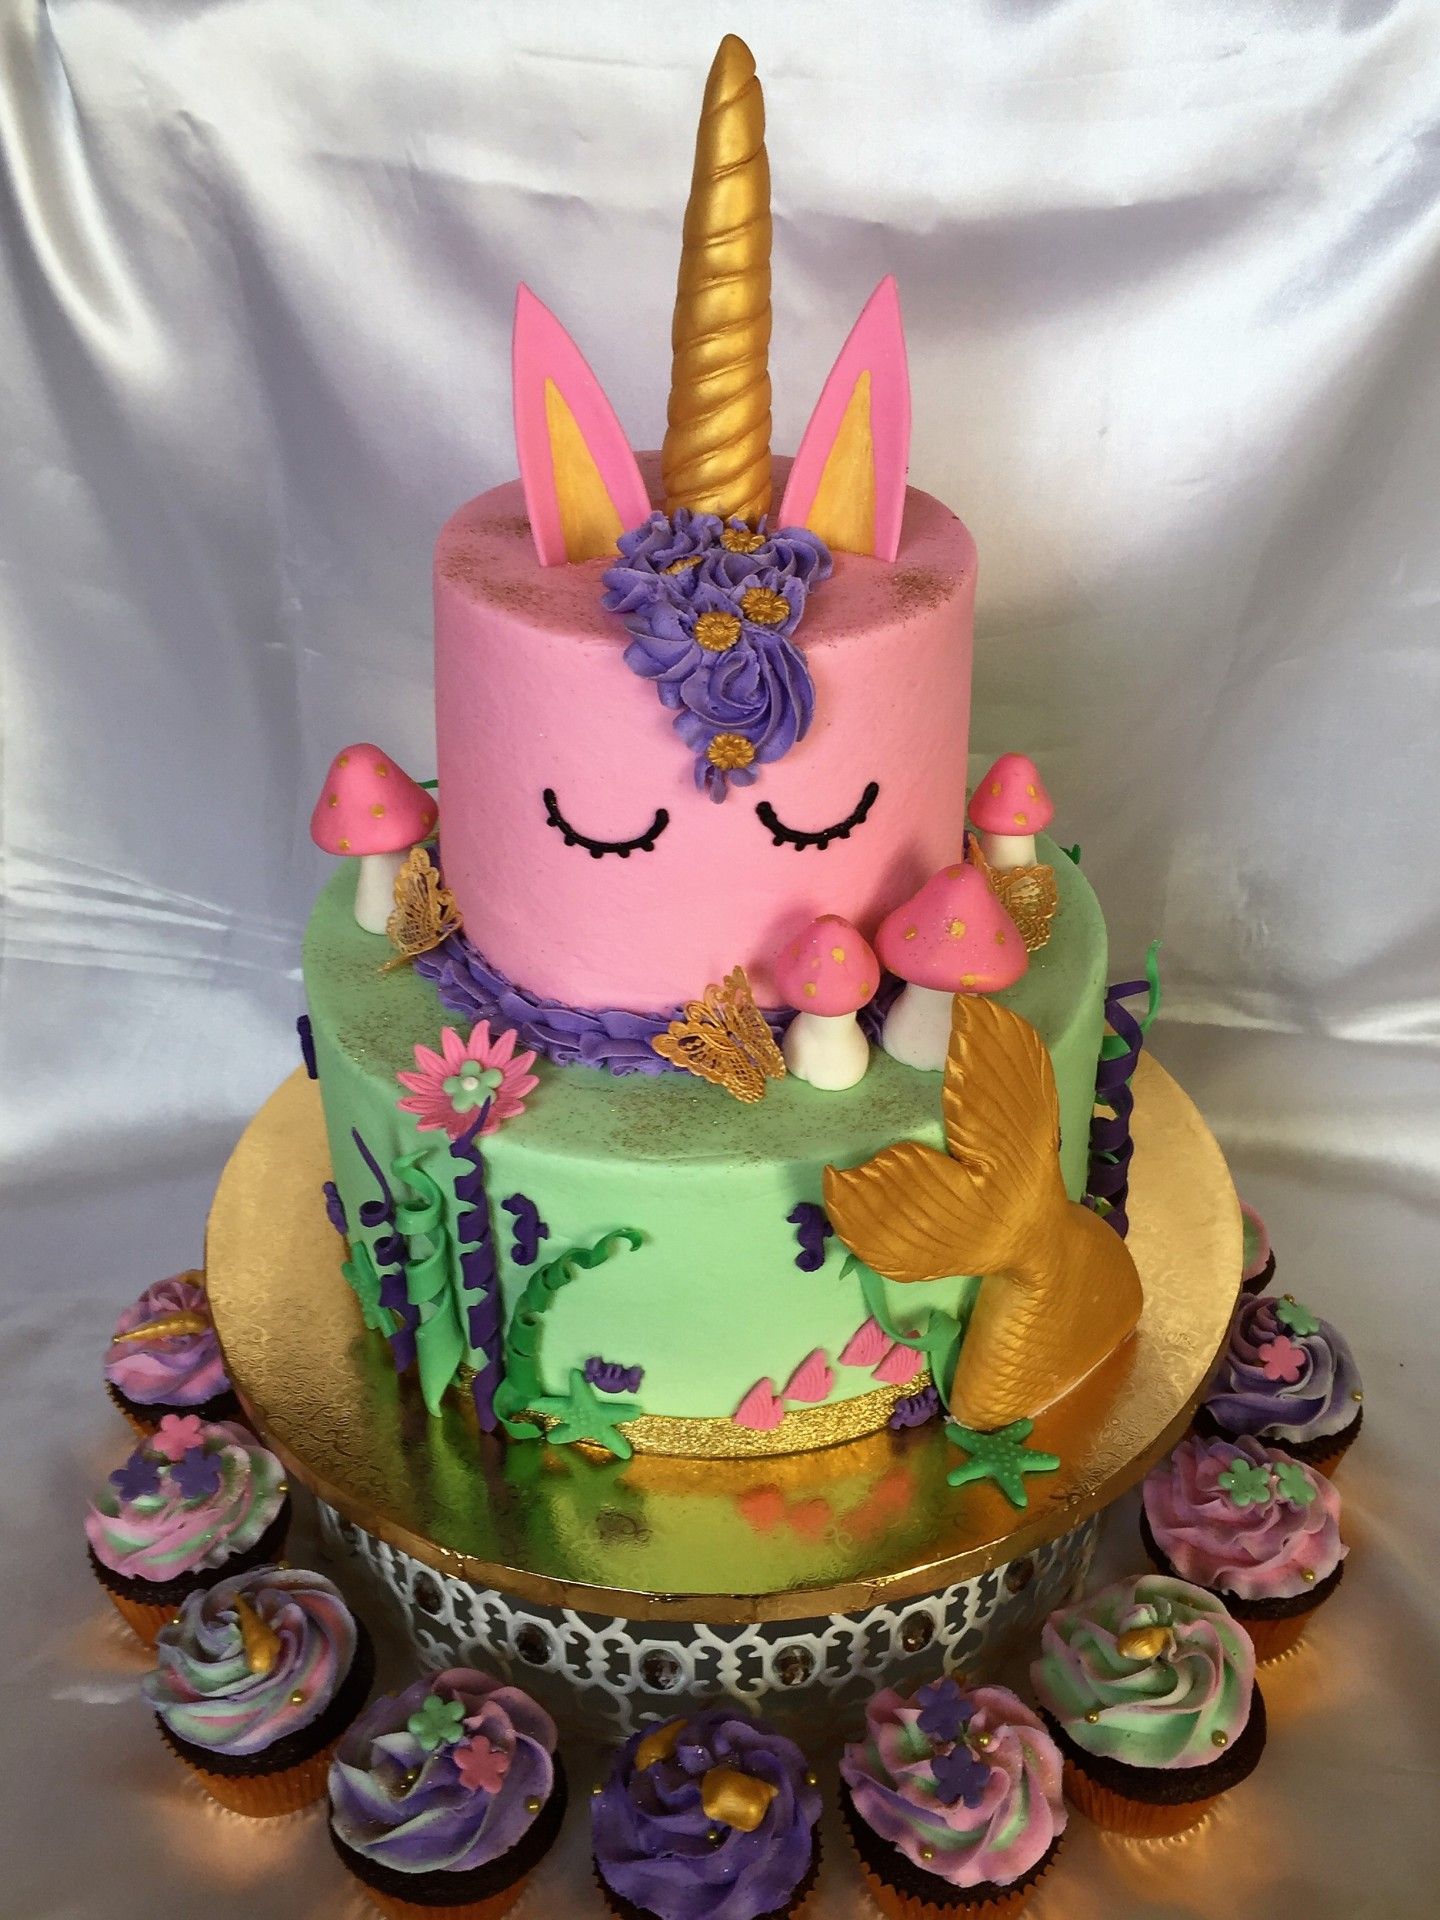 Magical theme- unicorn, fairies and mermaid